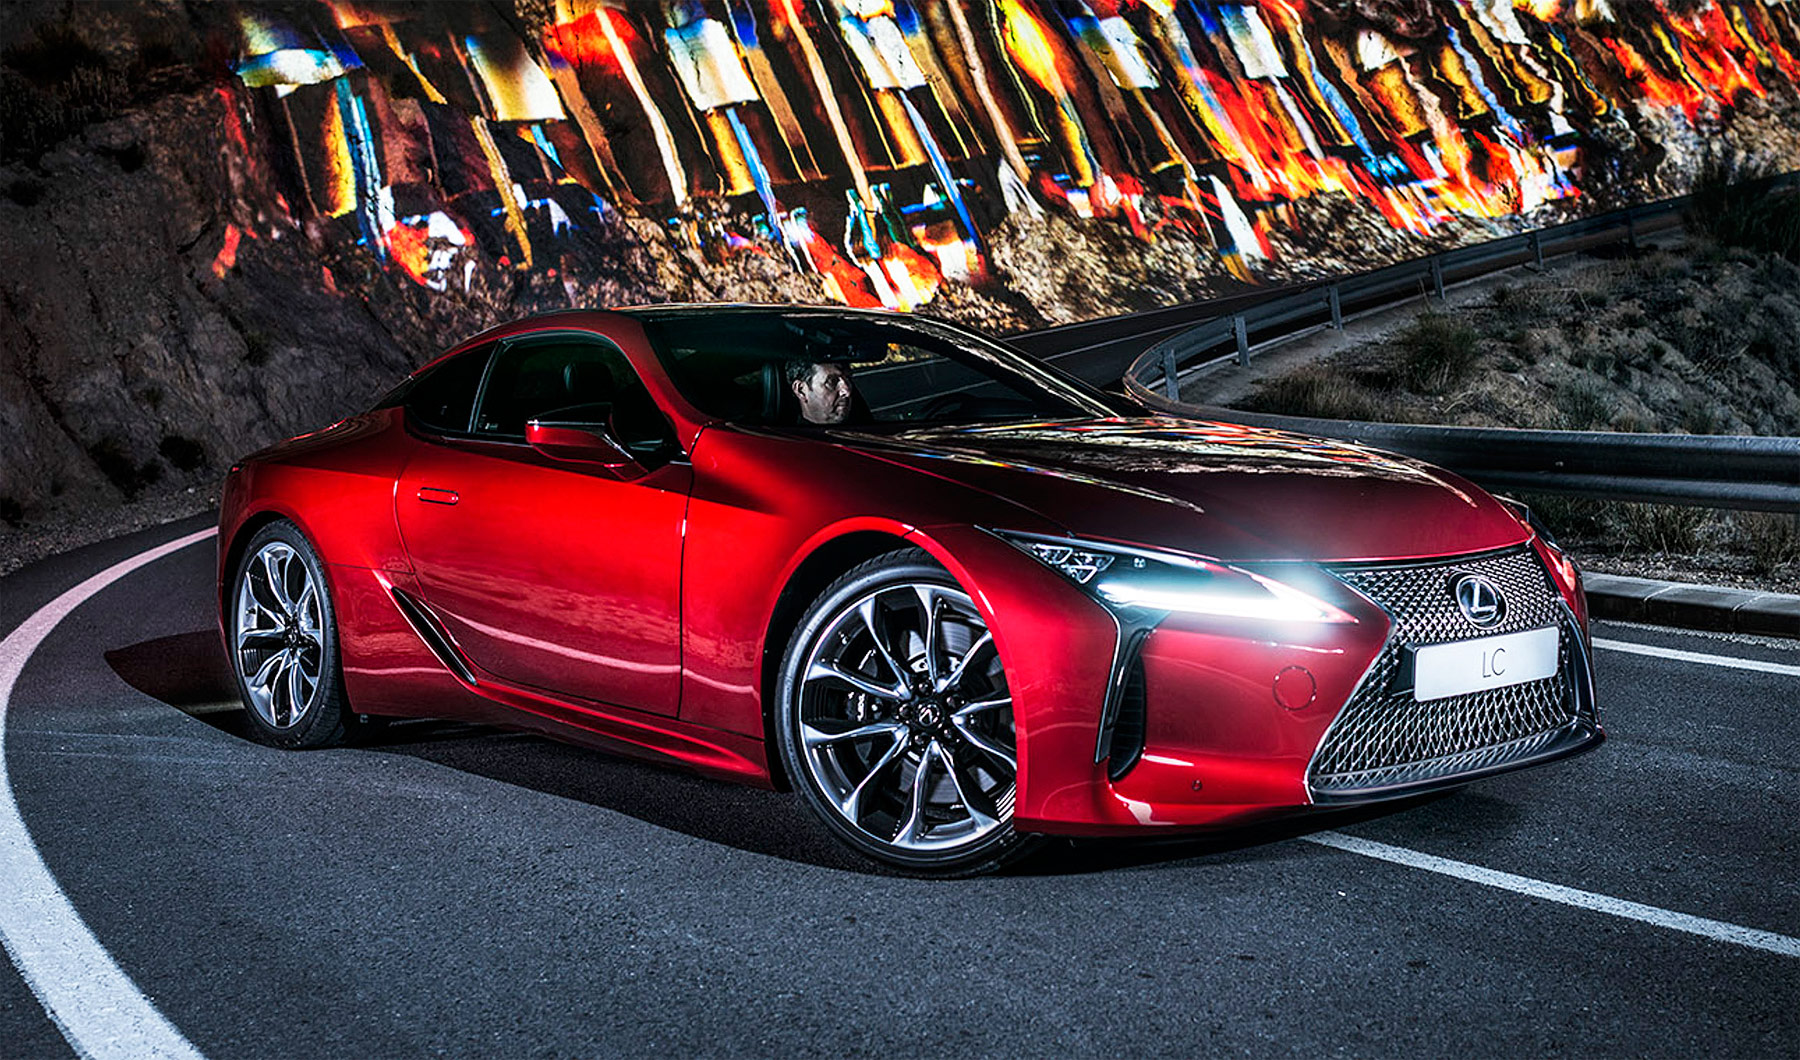 Six Consecutive Years Of Sales Growth For Lexus In The UK